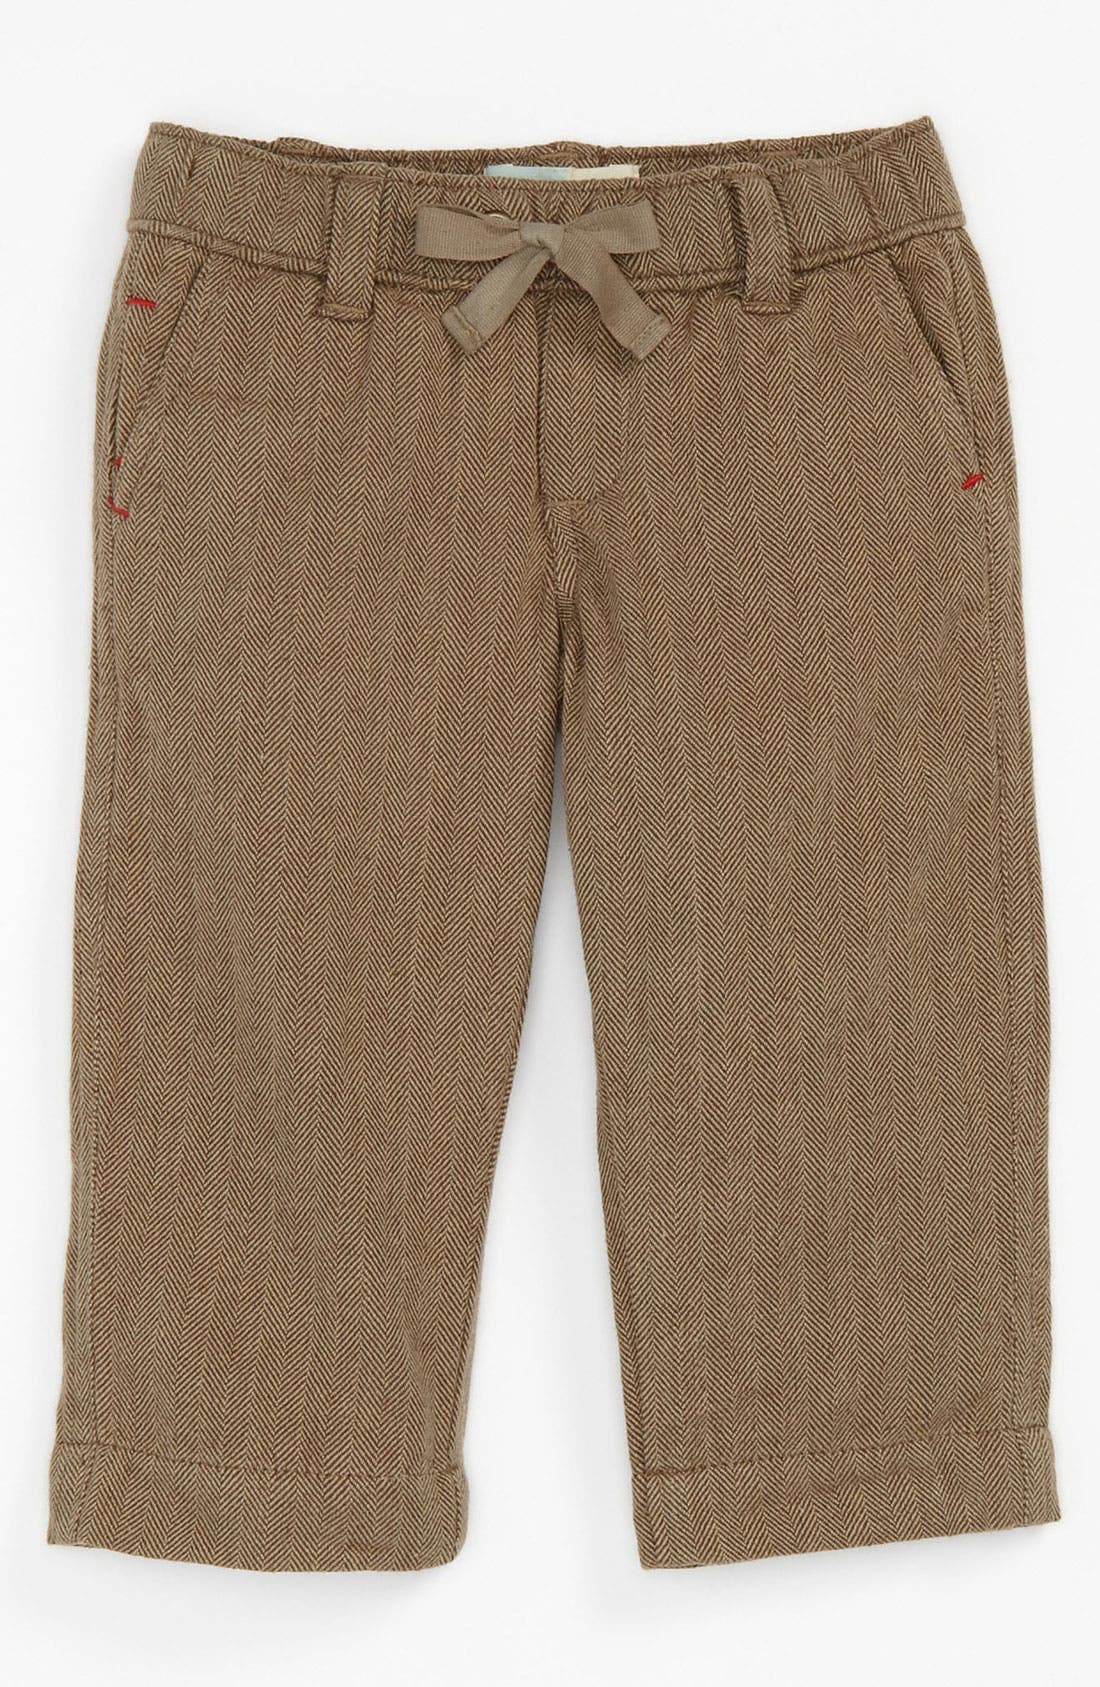 Alternate Image 1 Selected - Peek 'Homestead' Herringbone Pants (Infant)